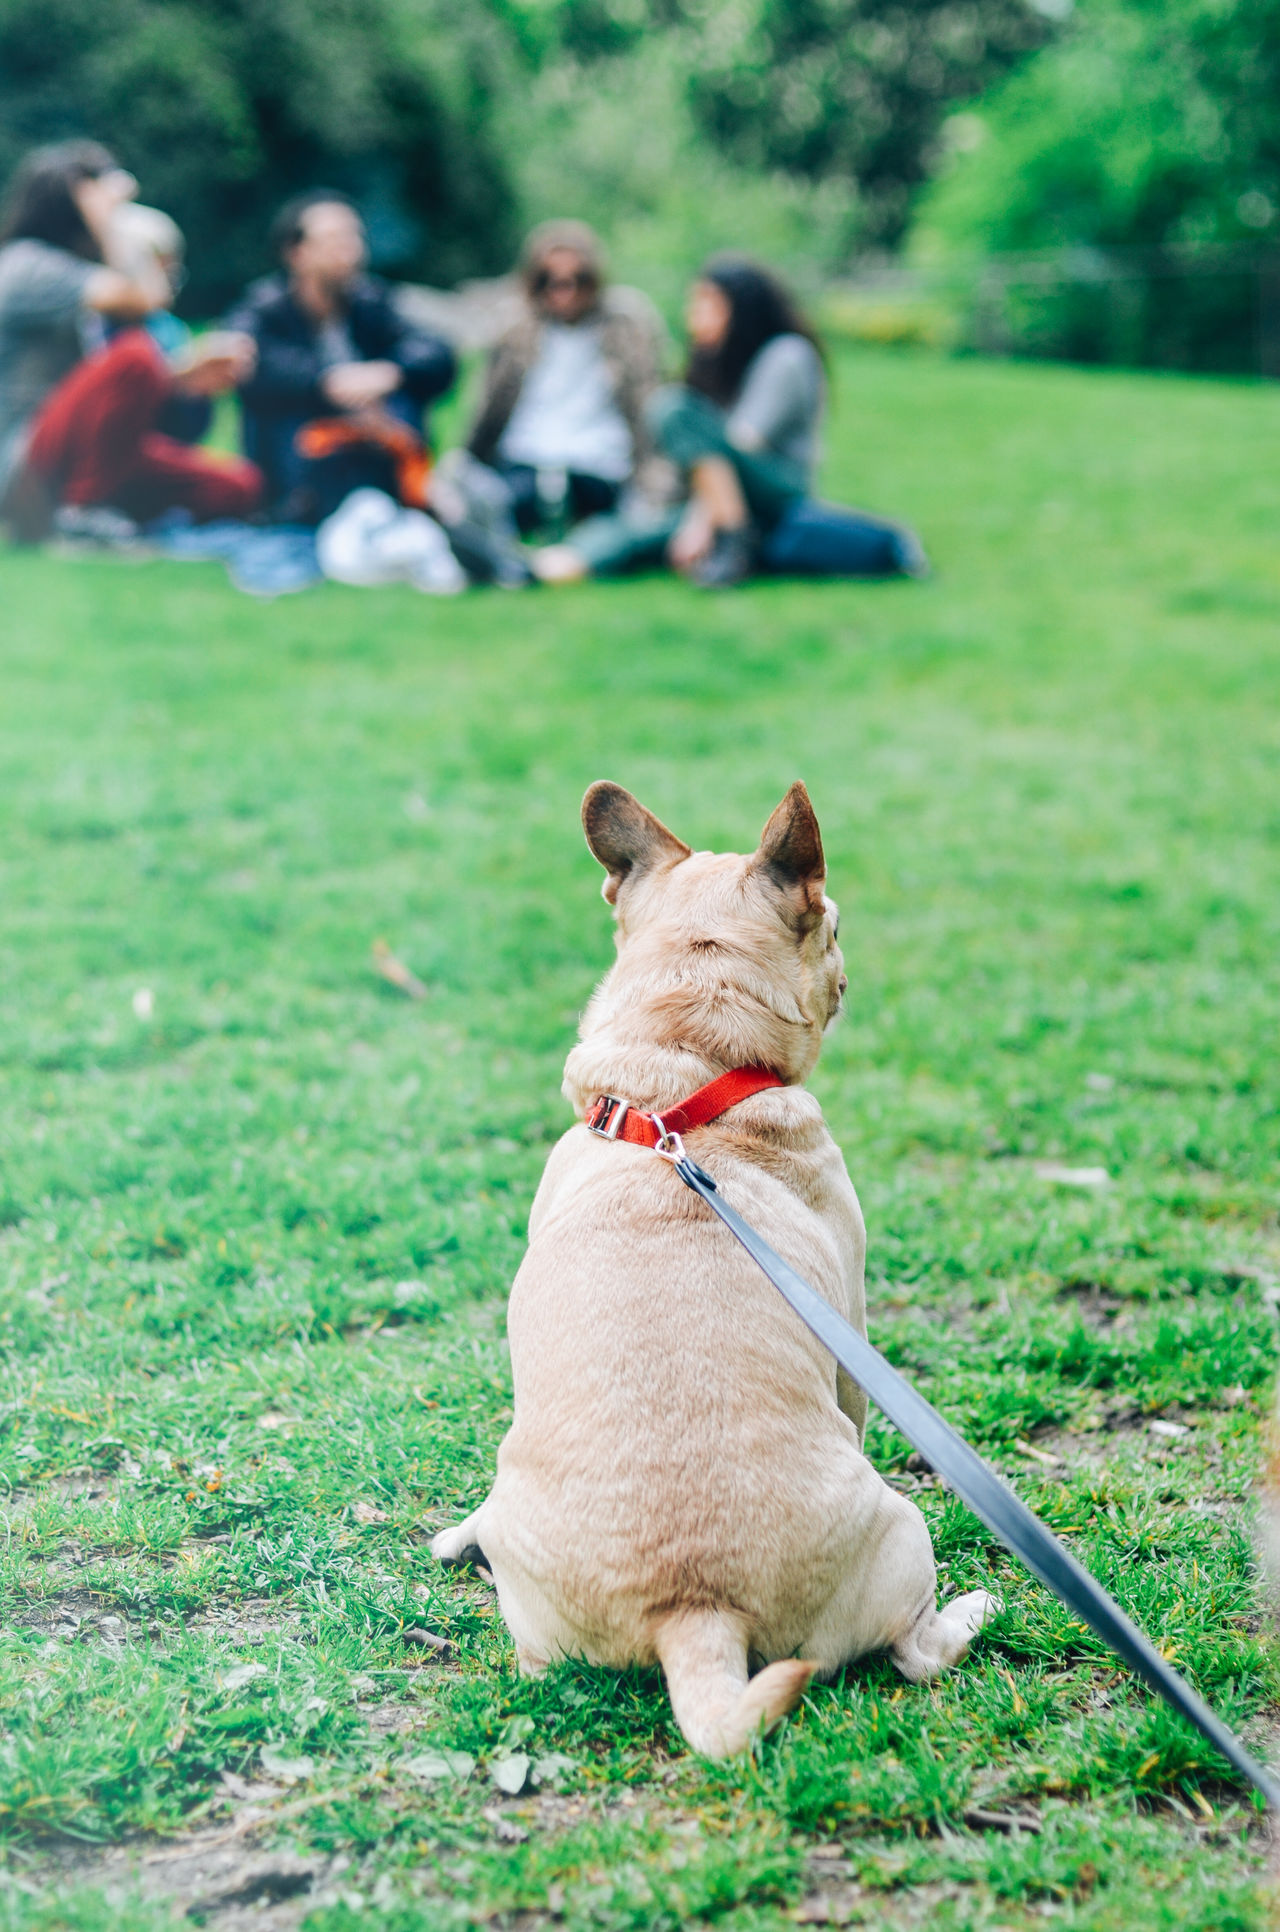 Berlin Day Dog Domestic Animals Enjoying The Sun Field Frenchbulldog Friendship Fun Fun In The Park Grass Green Color Kreuzberg Nature One Animal Outdoors Park Pets Playing With The Animals Portrait Sitting Summer Neighborhood Map